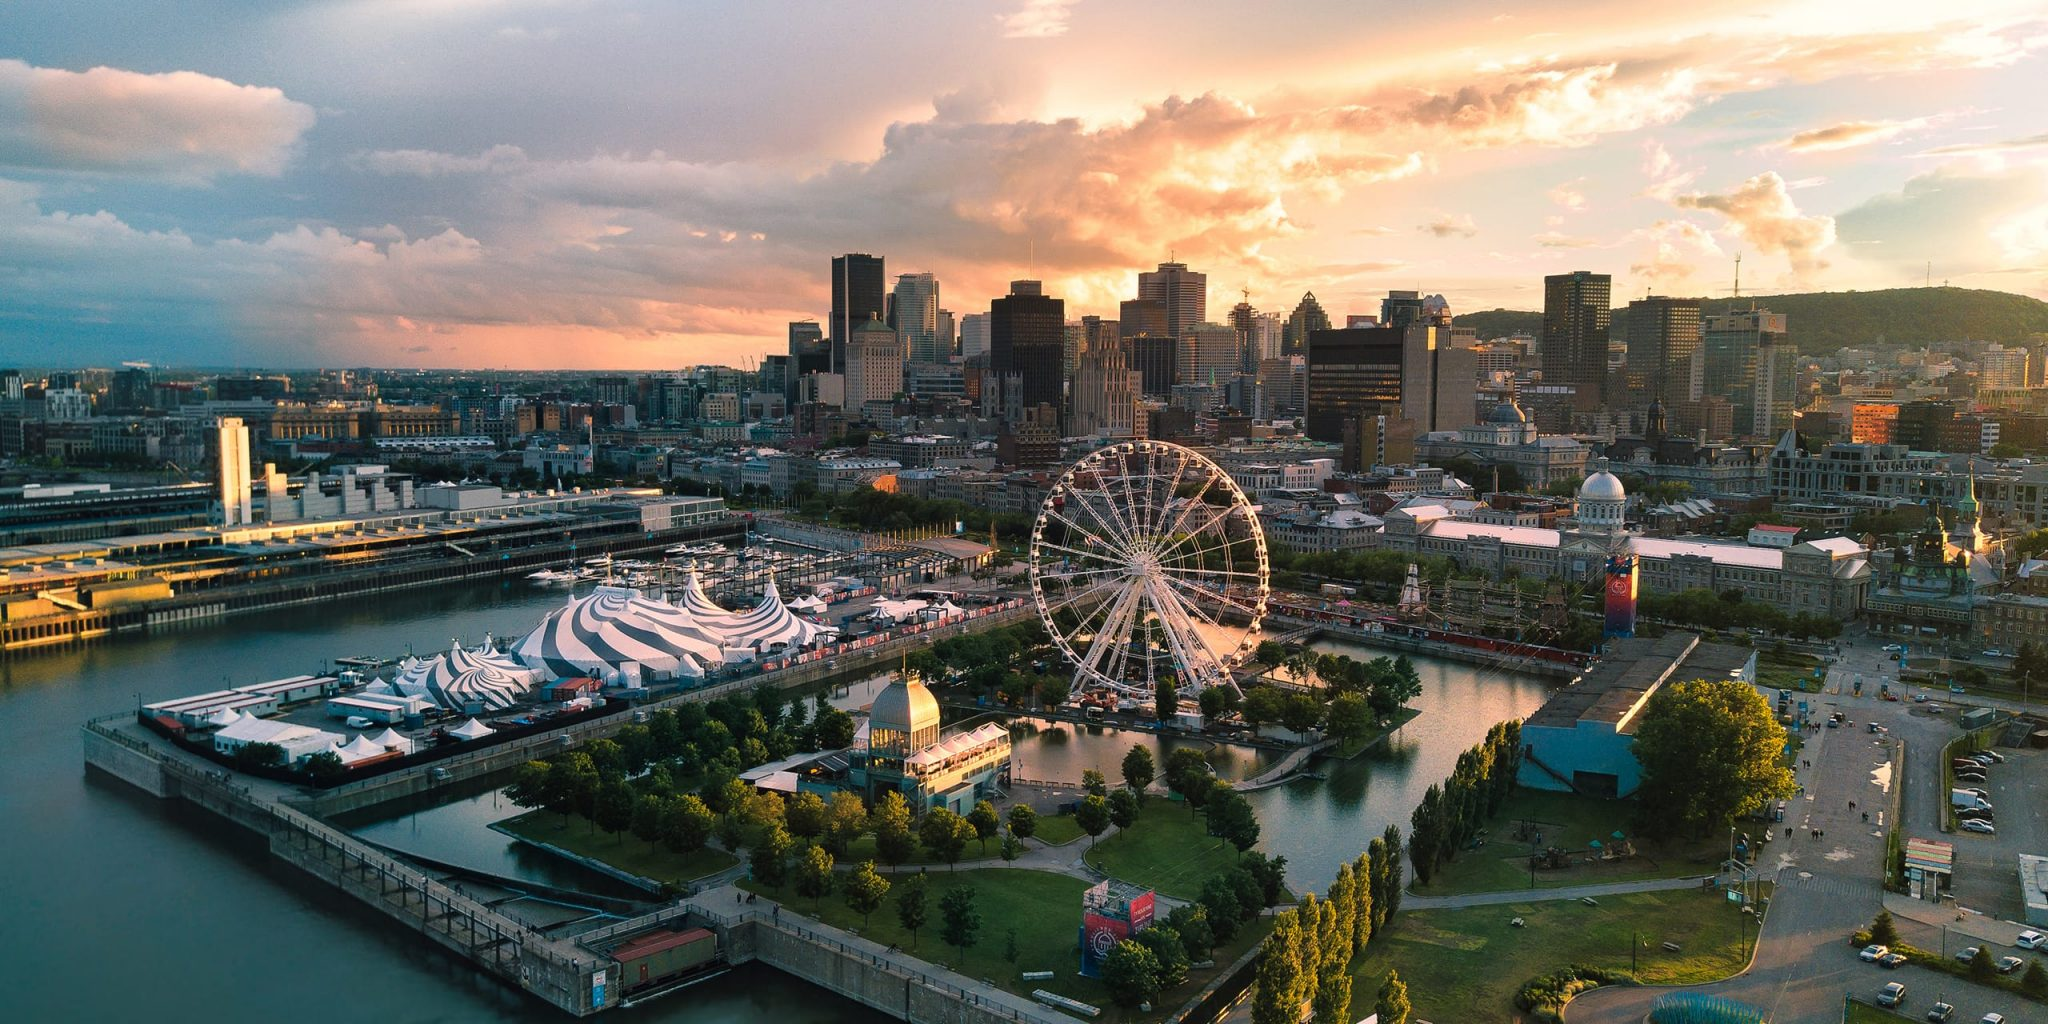 10-Best-Cities-To-Study-Abroad-Montreal